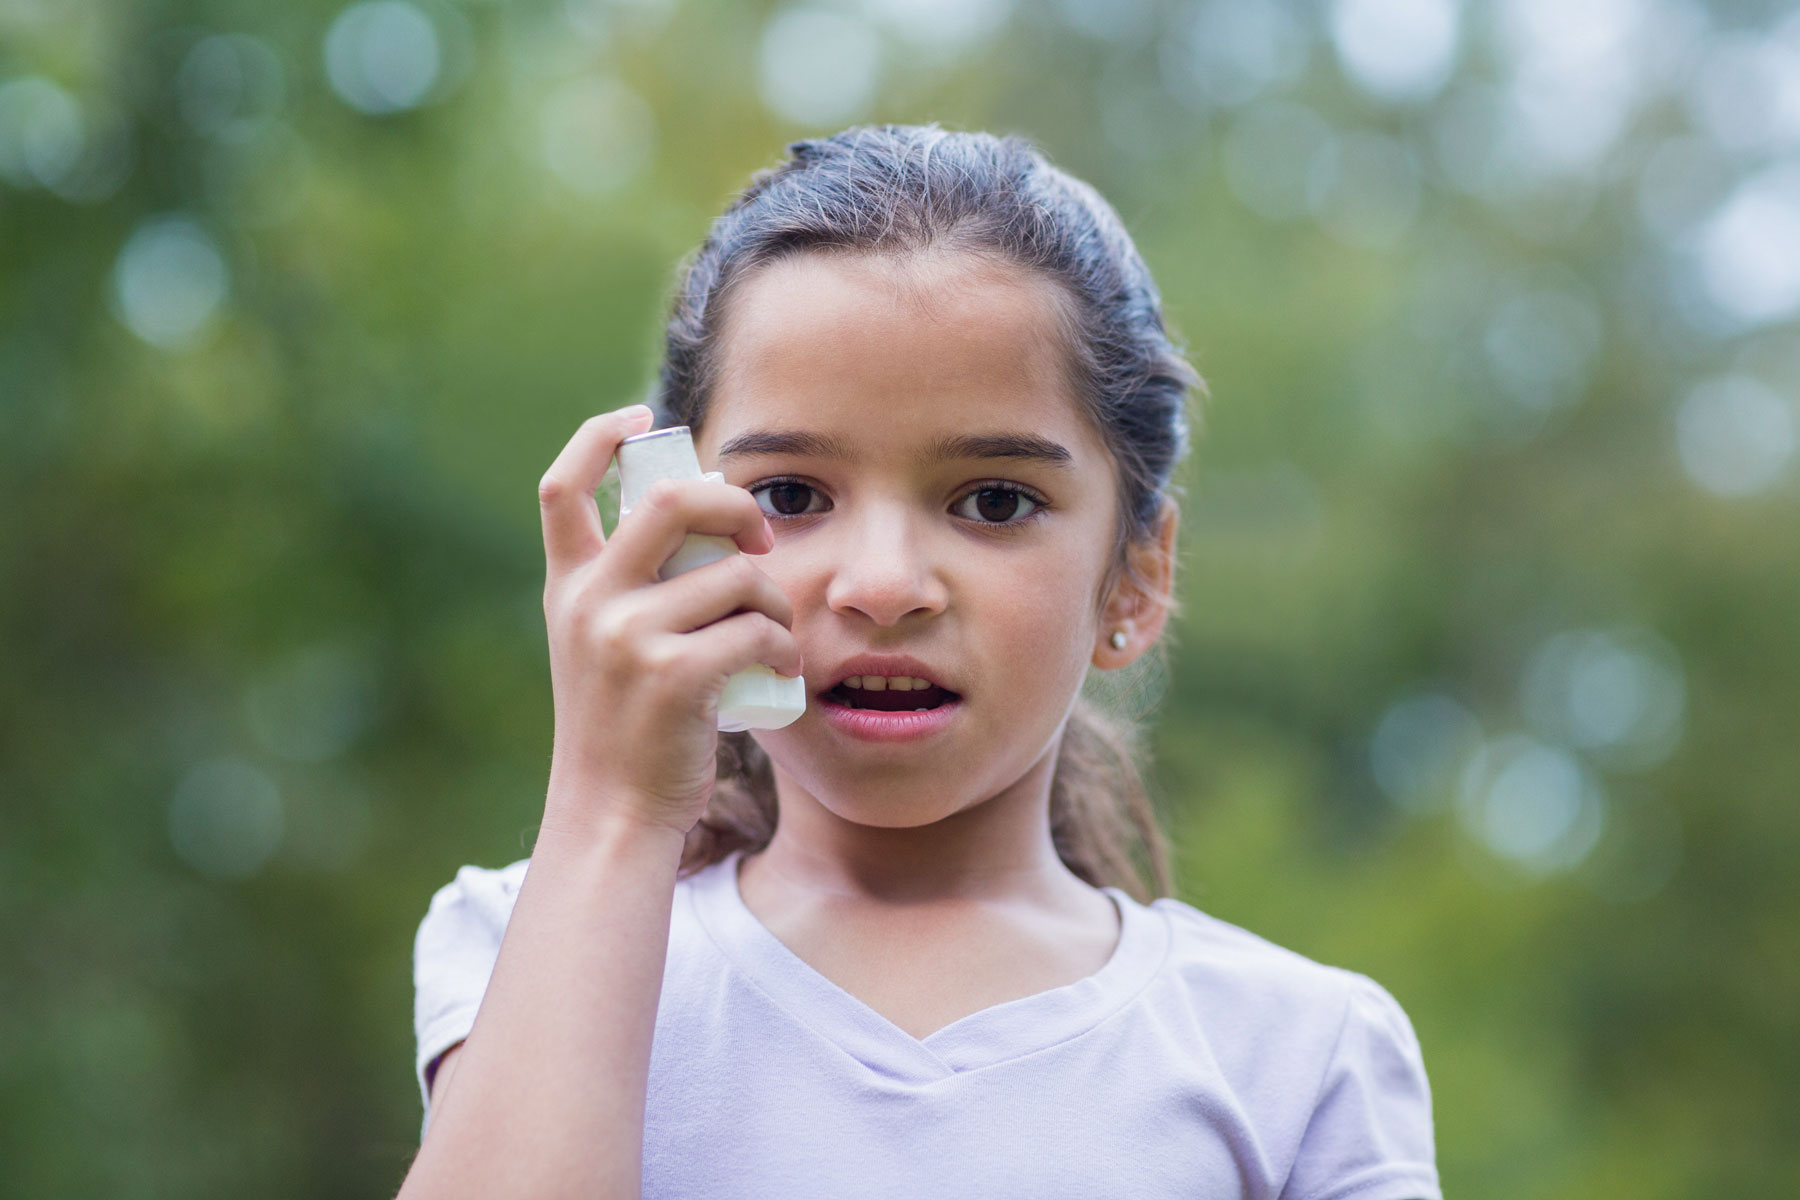 Obese Kids More Likely to Have Asthma, With Worse Symptoms pics